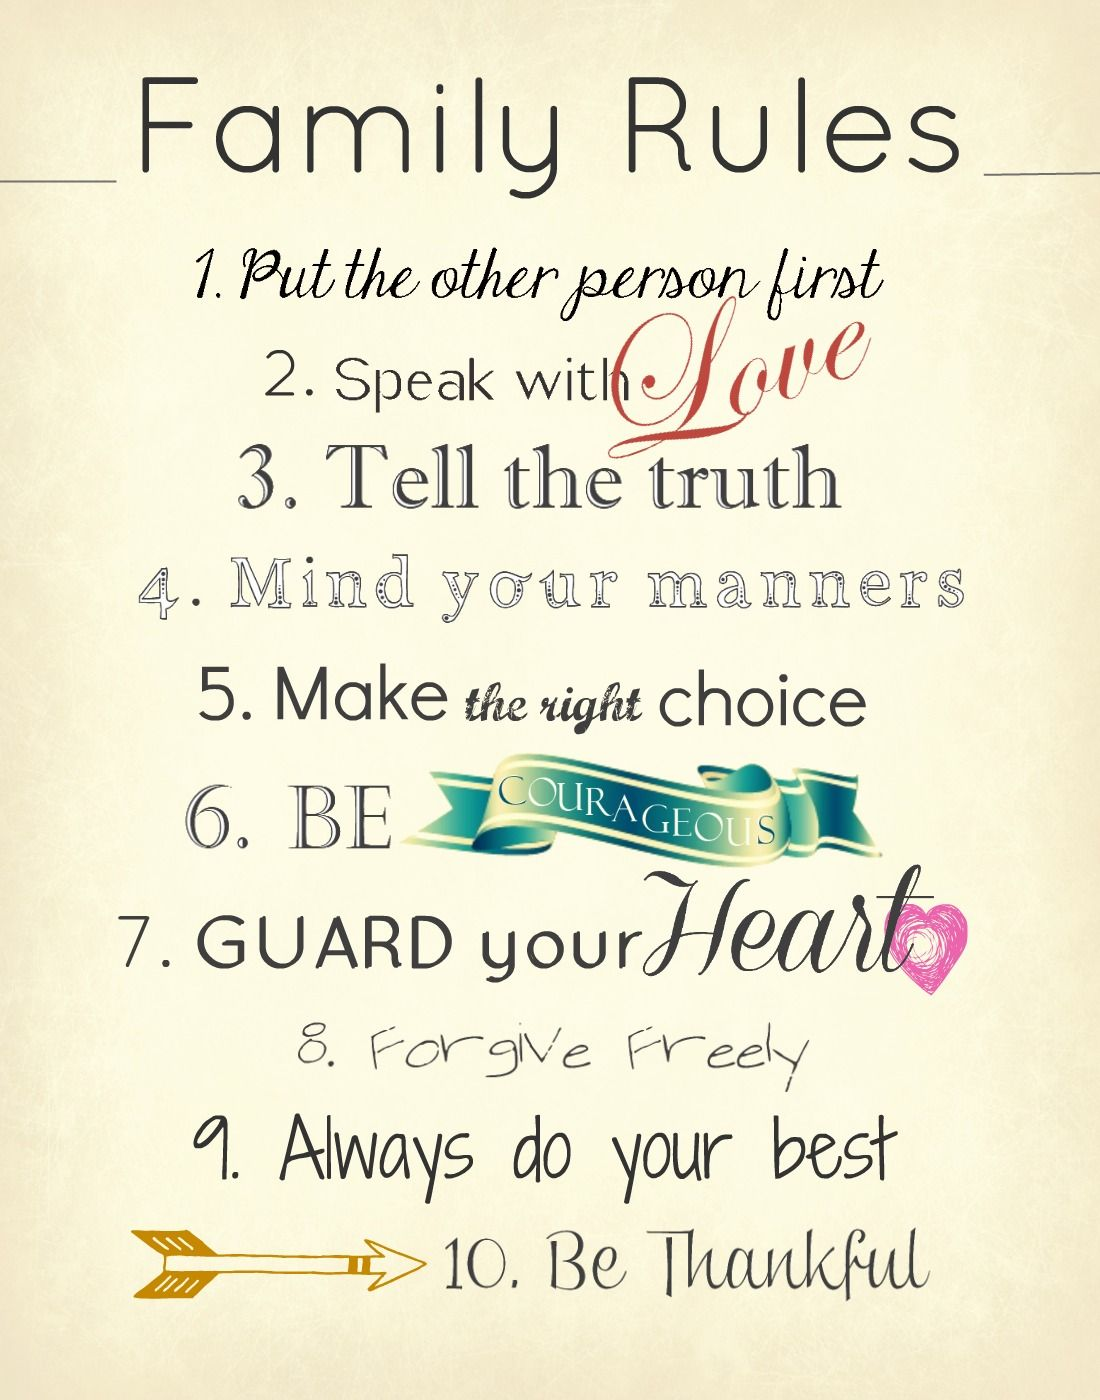 Family Rules - love #3